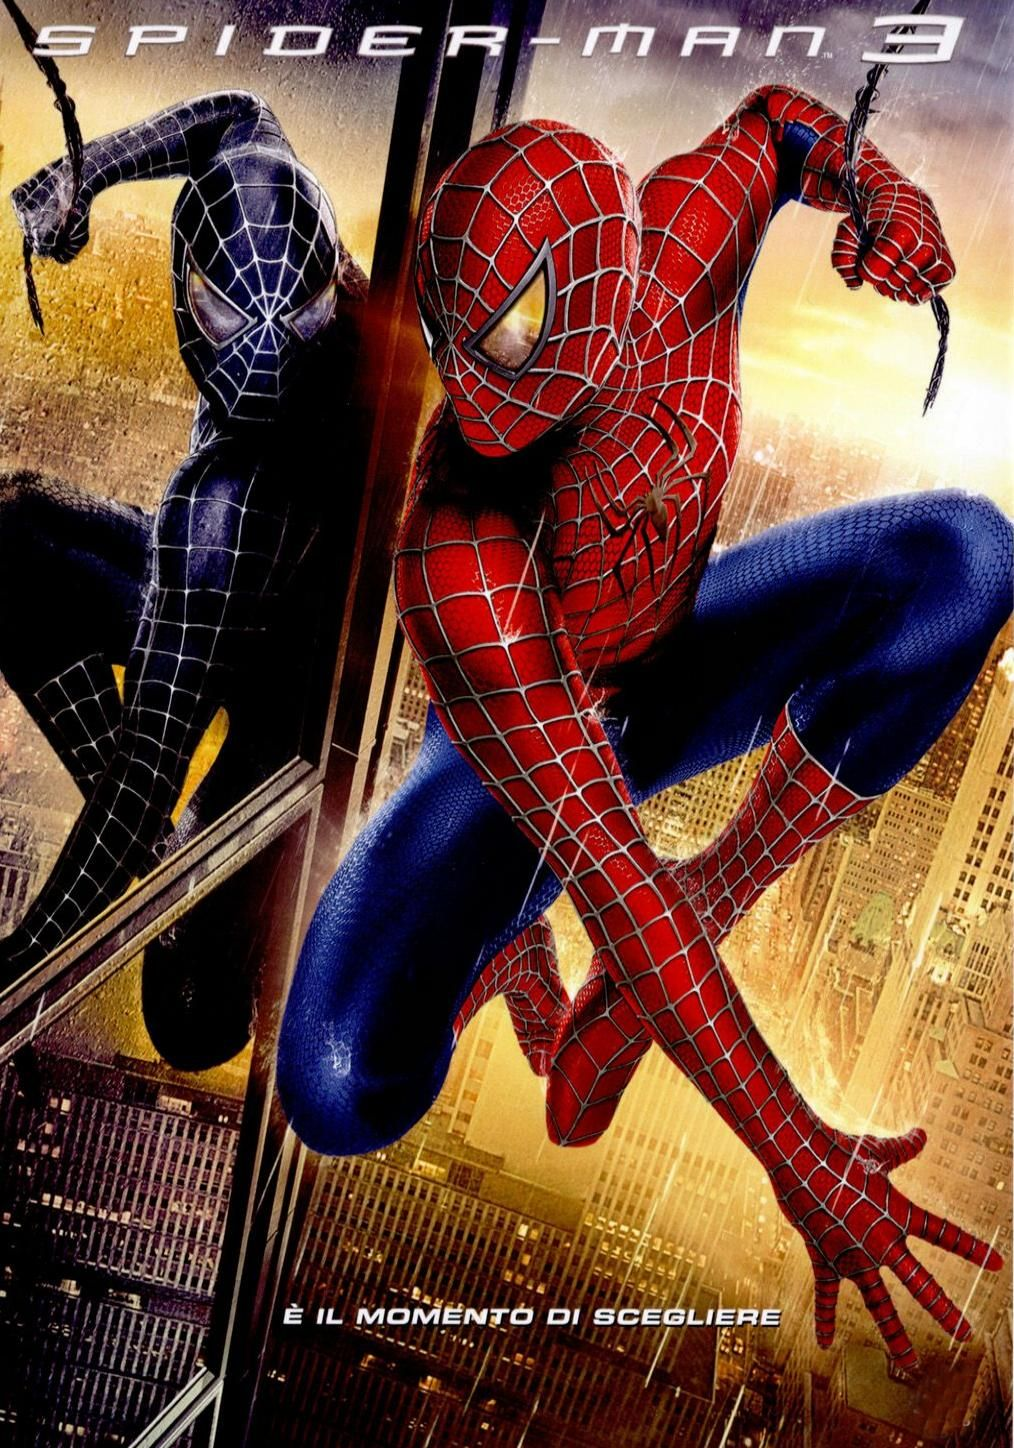 spider-man 3 (2007) | 2007 movie phreek | movies, superhero movies